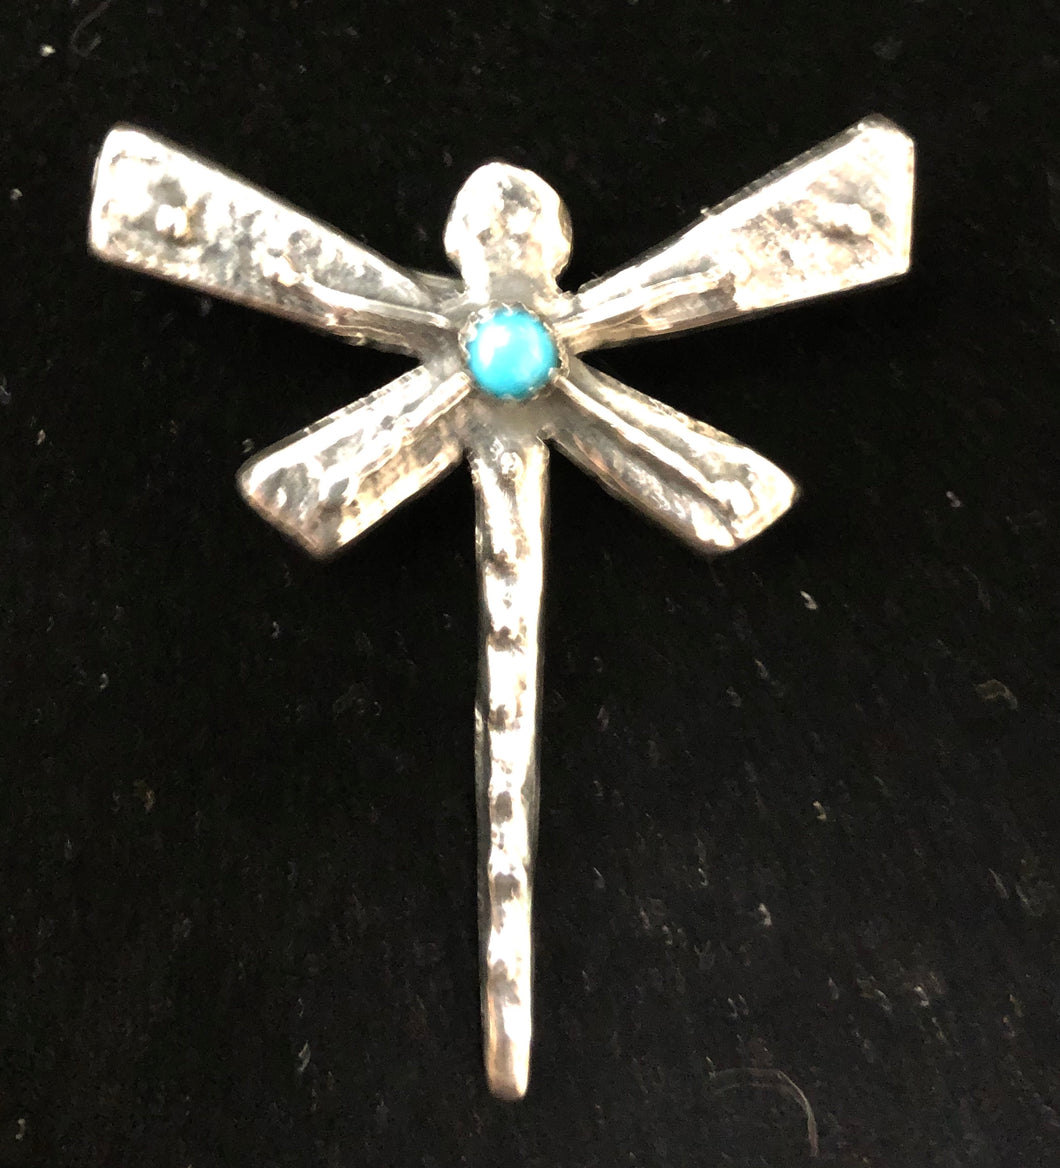 Turquoise sterling silver dragonfly pin/necklace pendant